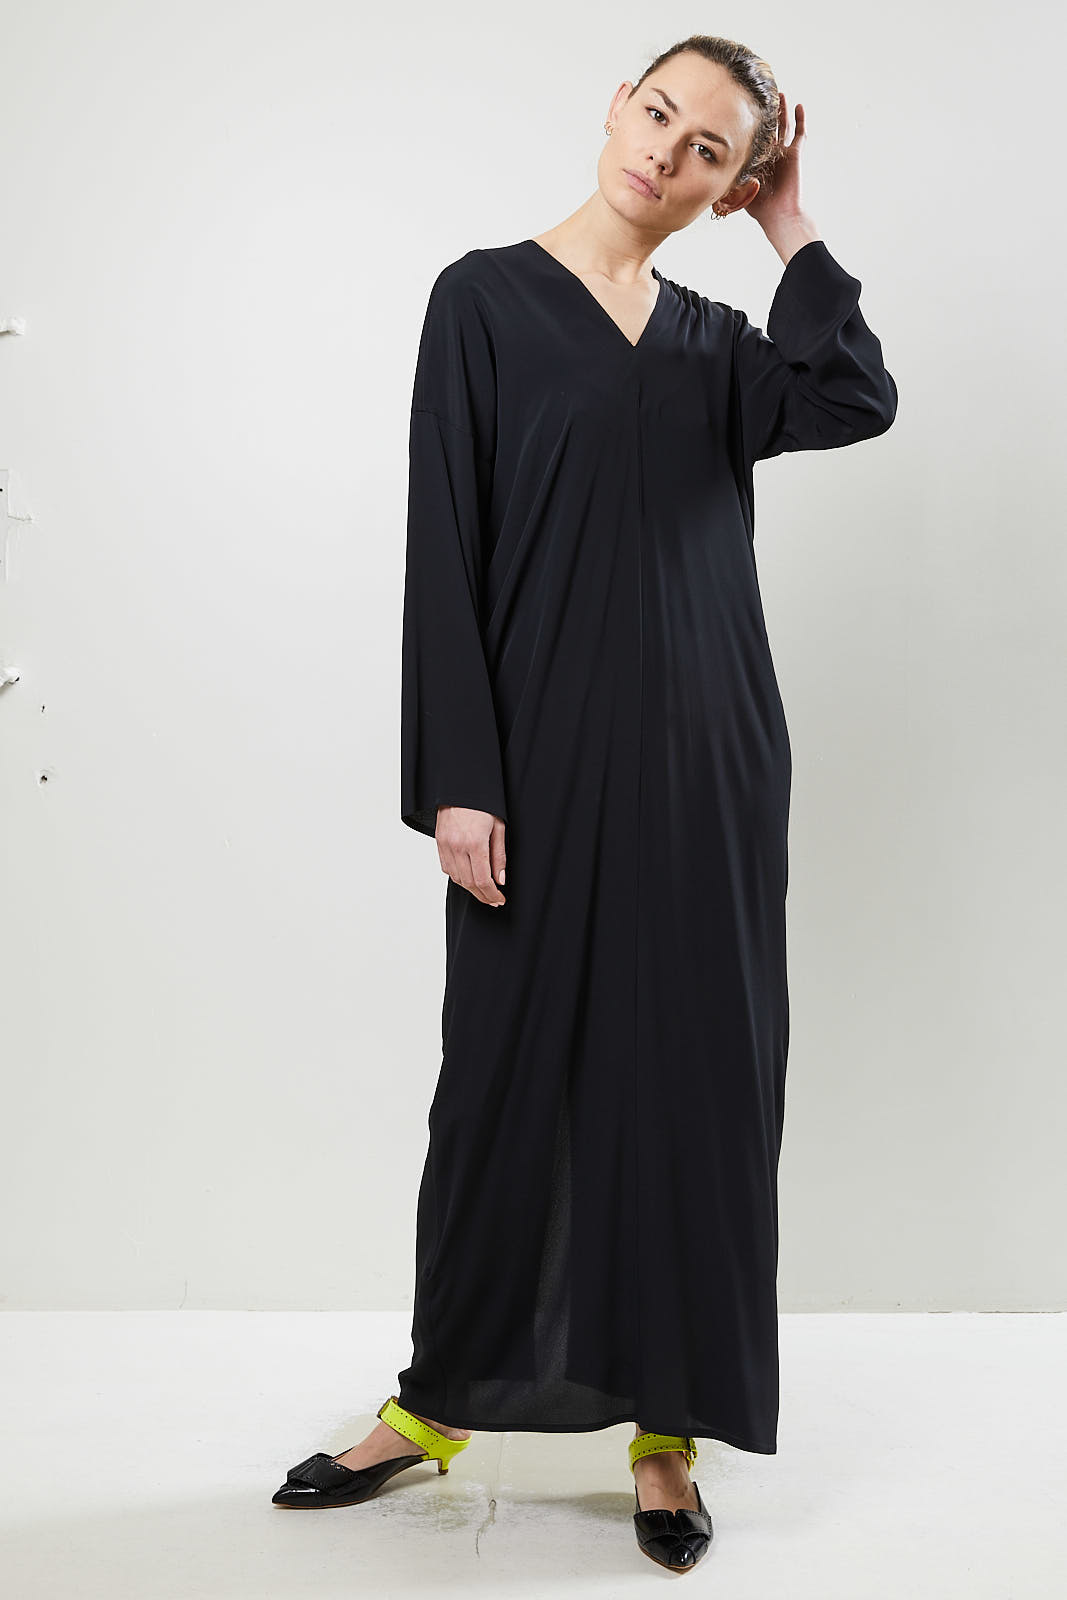 Monique van Heist - tunic silk dress black